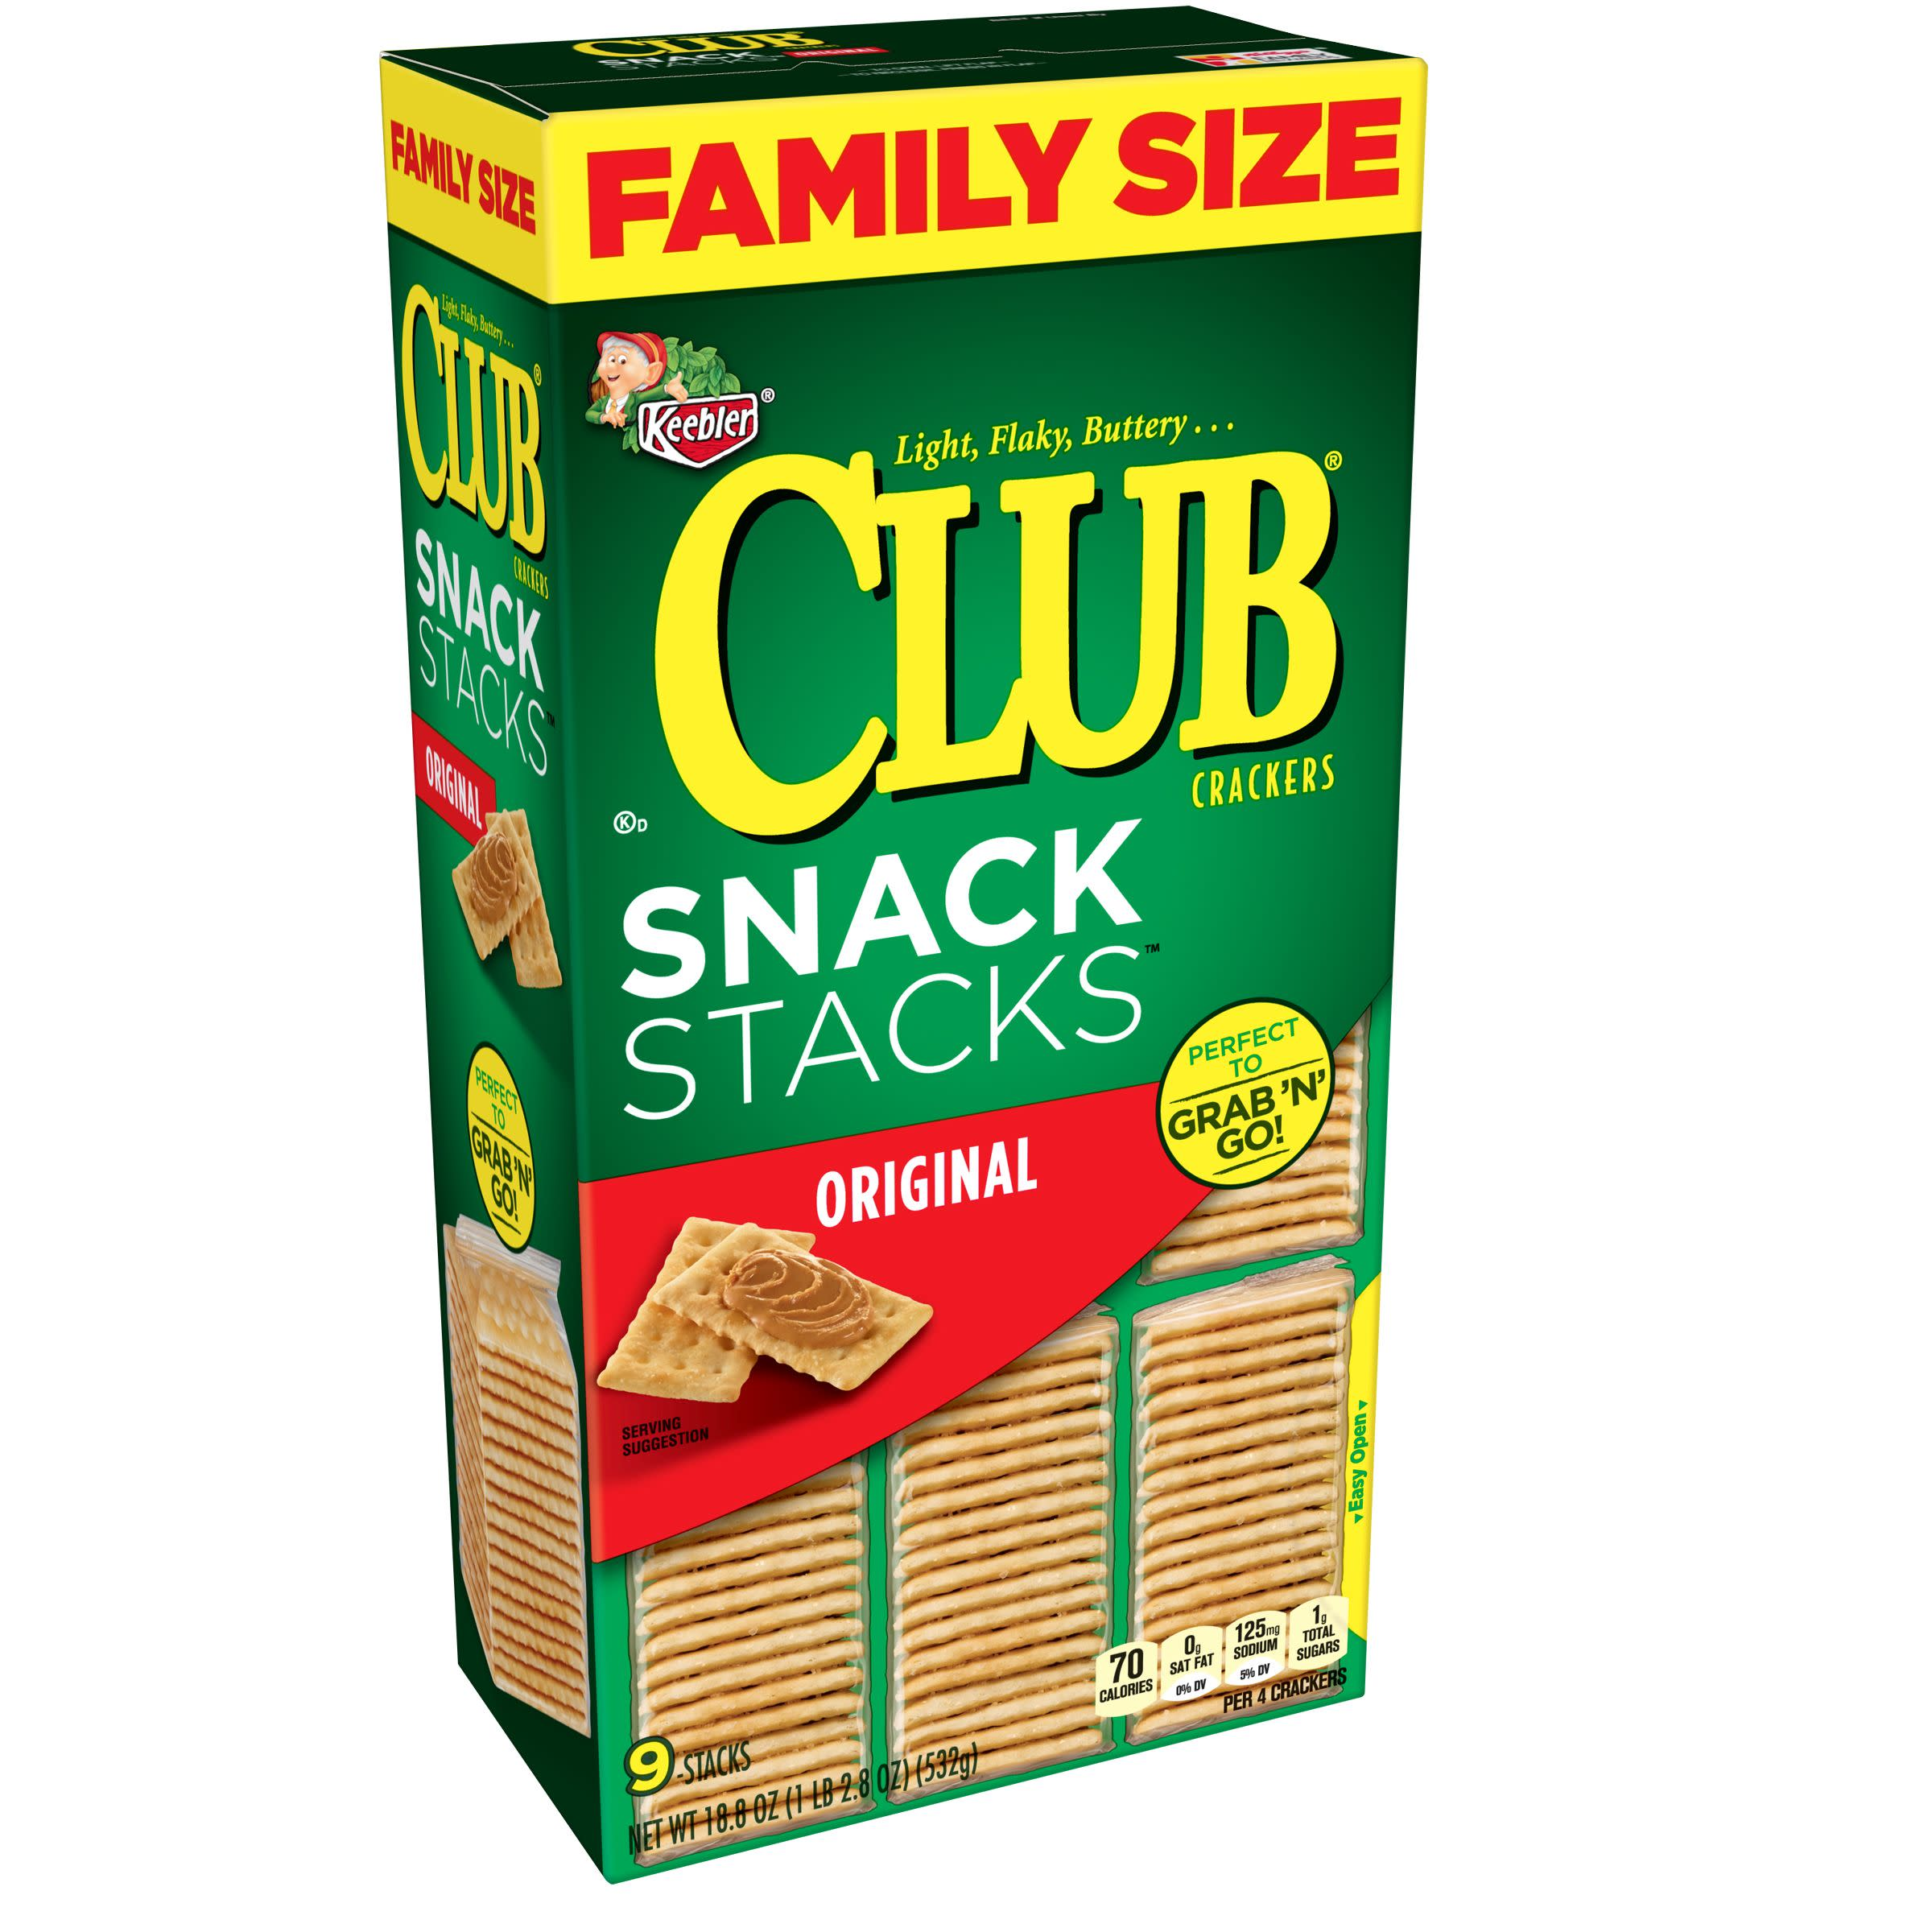 (3 Pack) Keebler Club Snack Stacks Original Crackers 18.8 oz